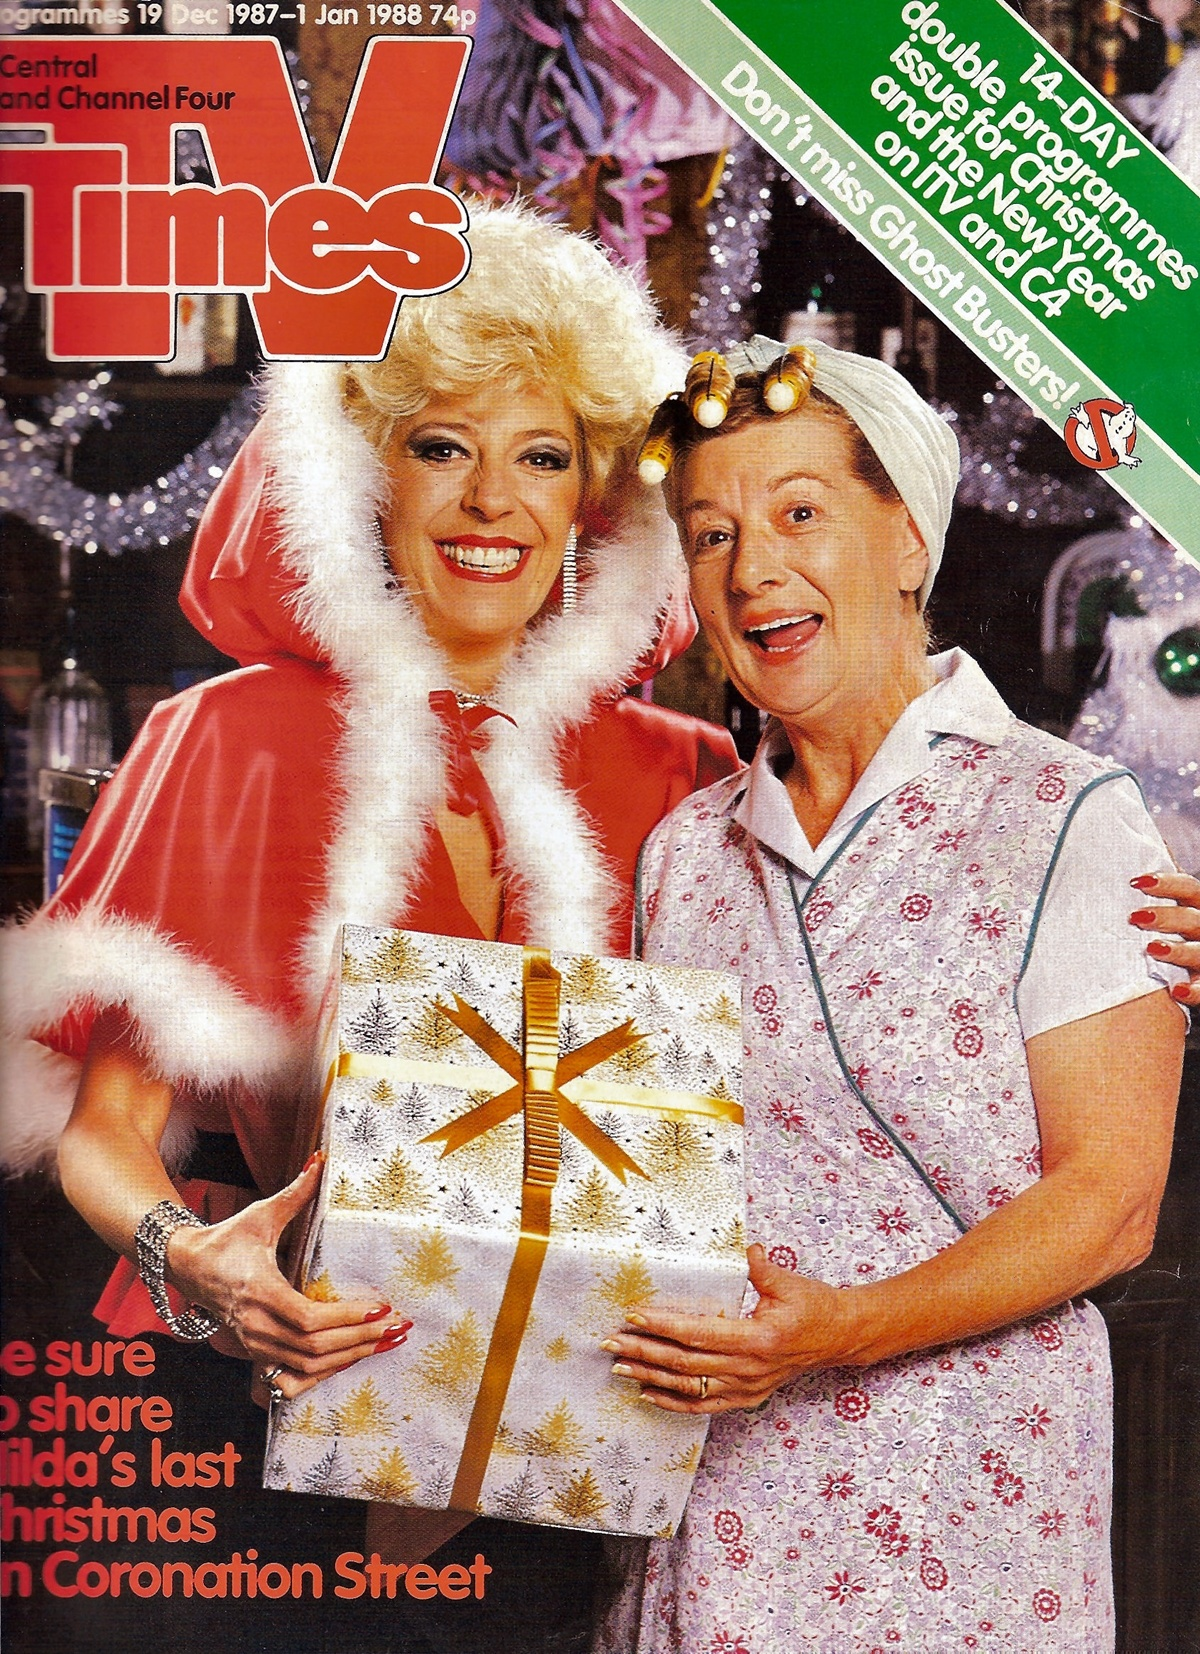 INTRO2 7 22 Classic 80s Films On TV This Christmas In The UK!